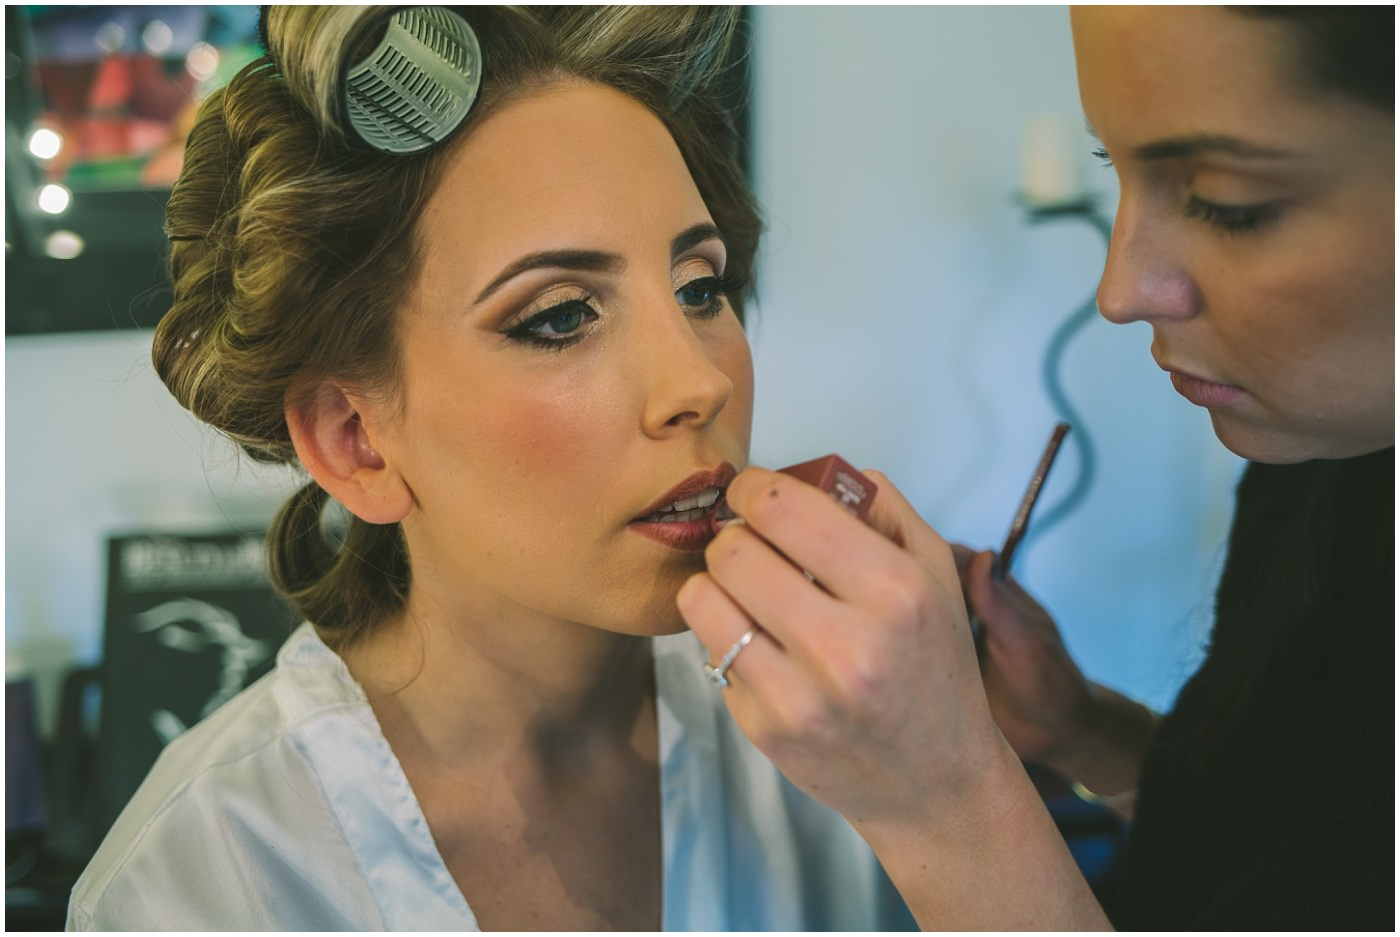 Lipstick being applied for bride